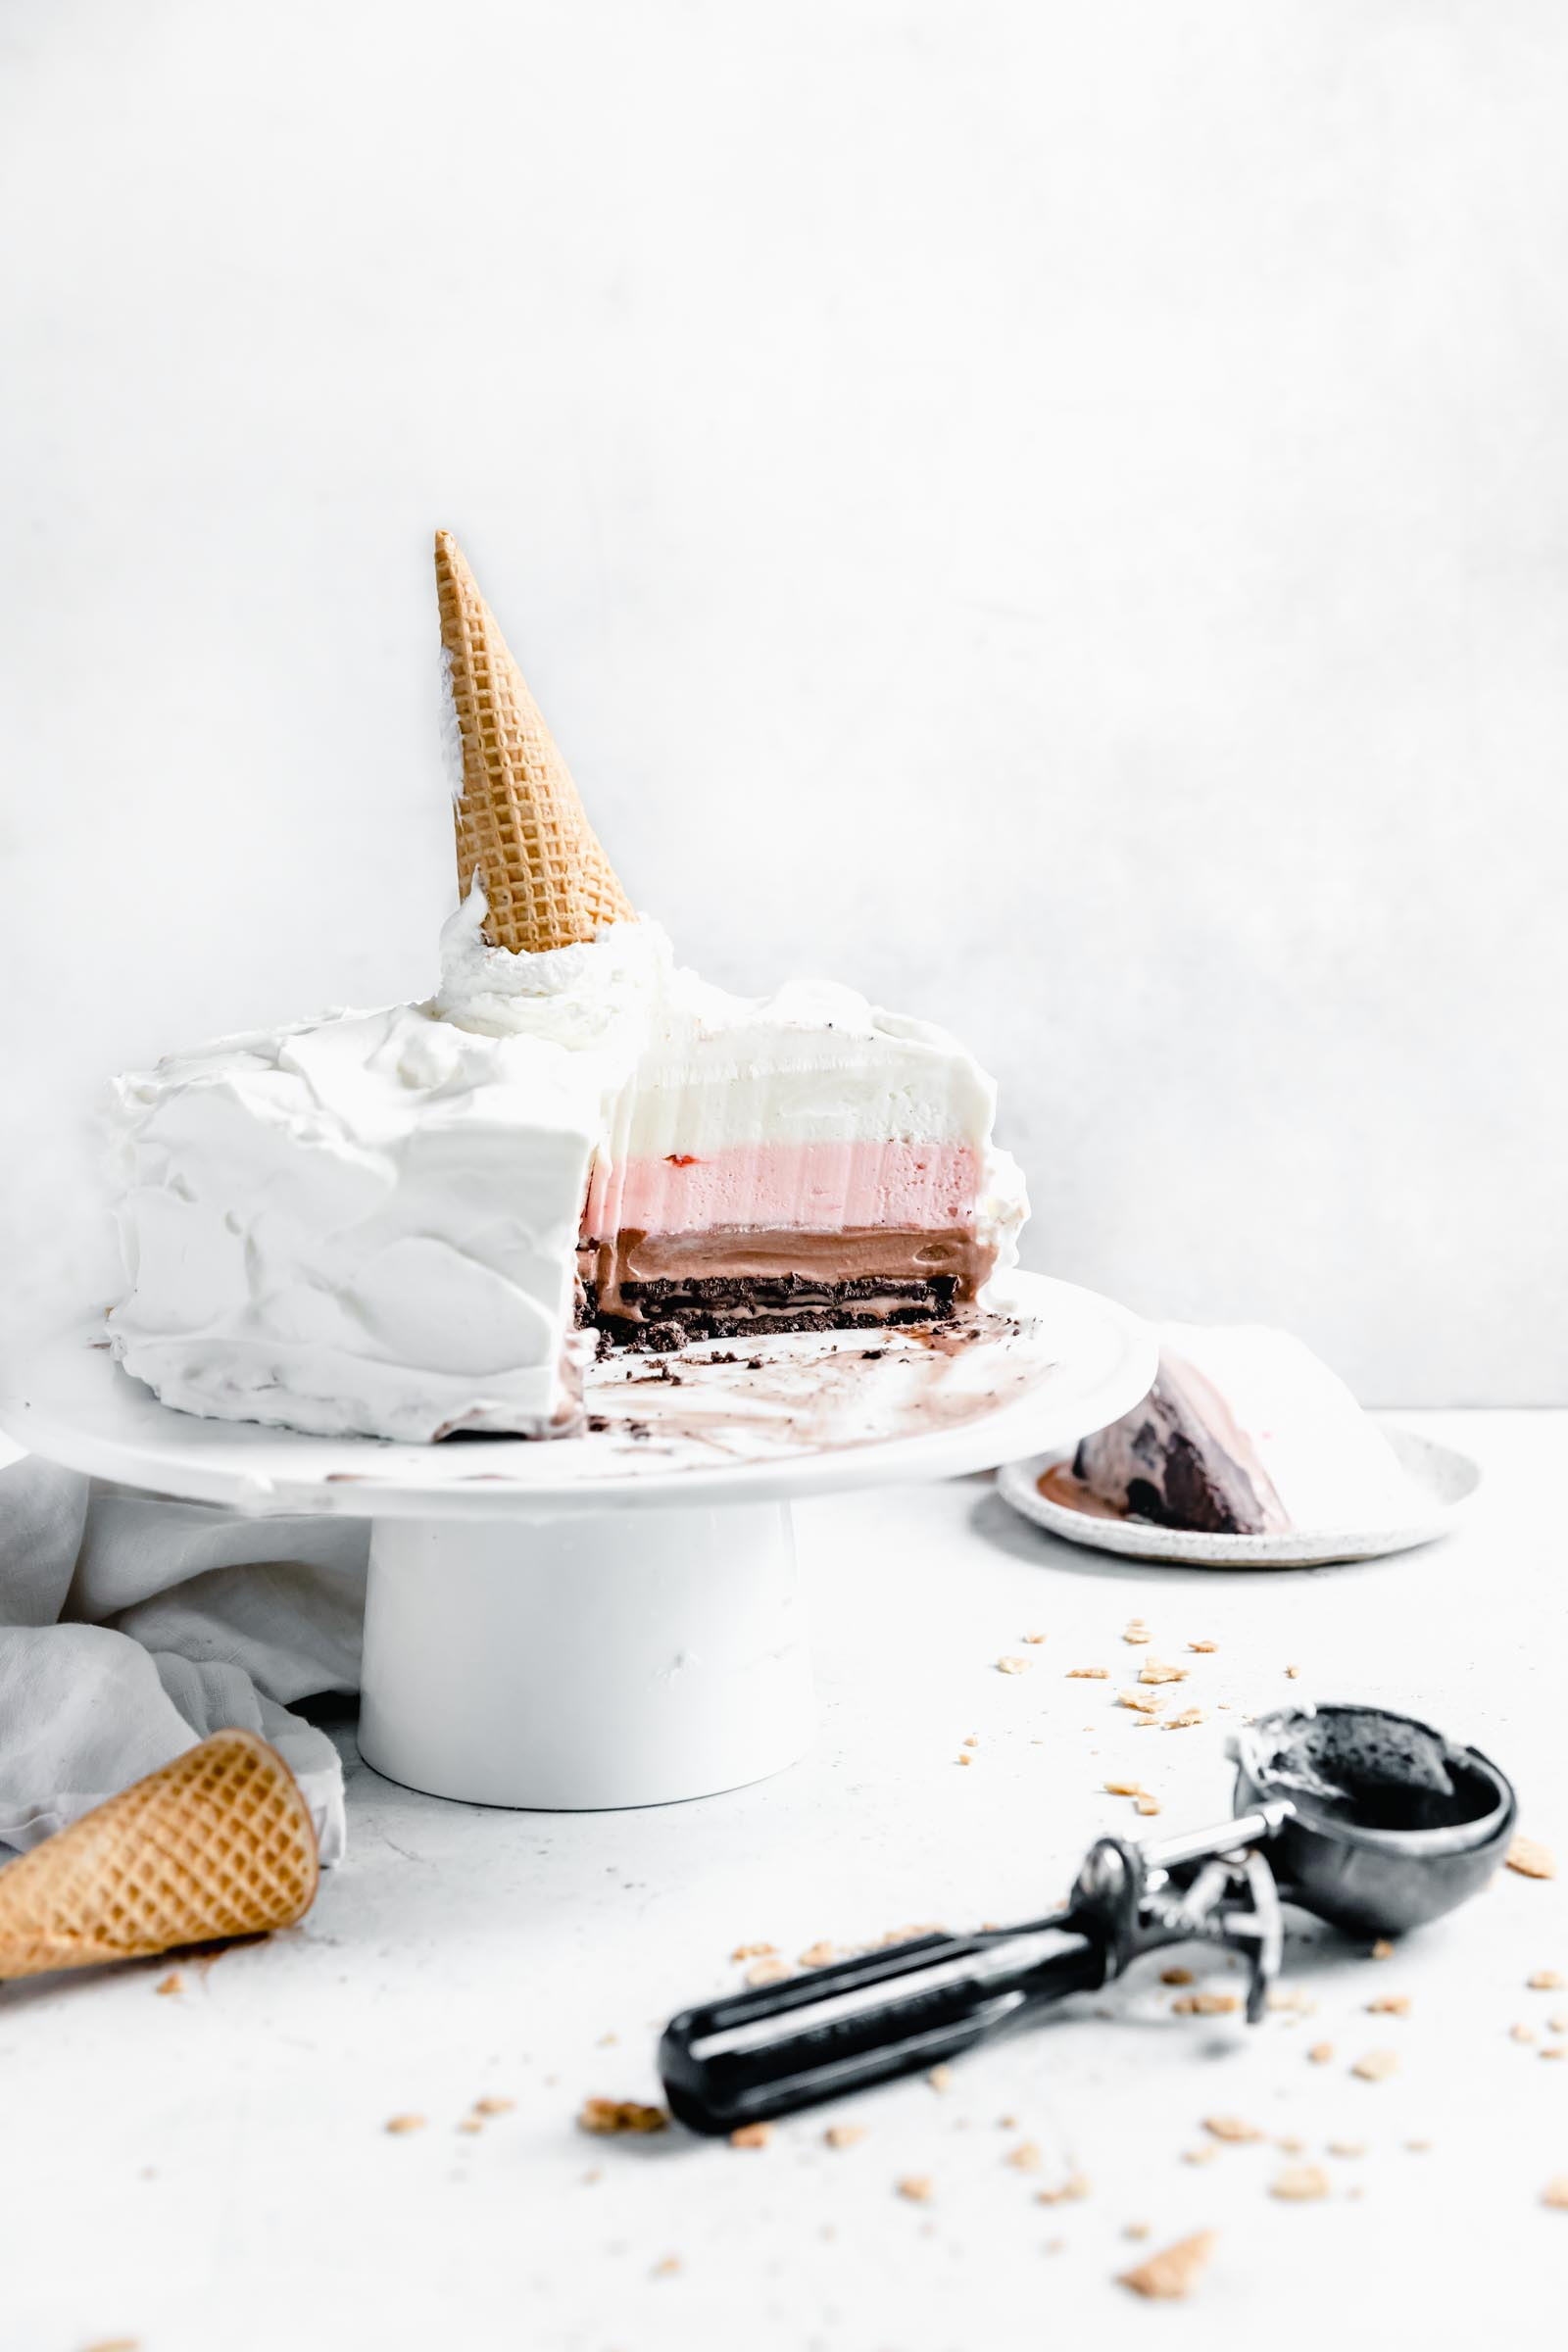 Neapolitan ice cream cake with slice out